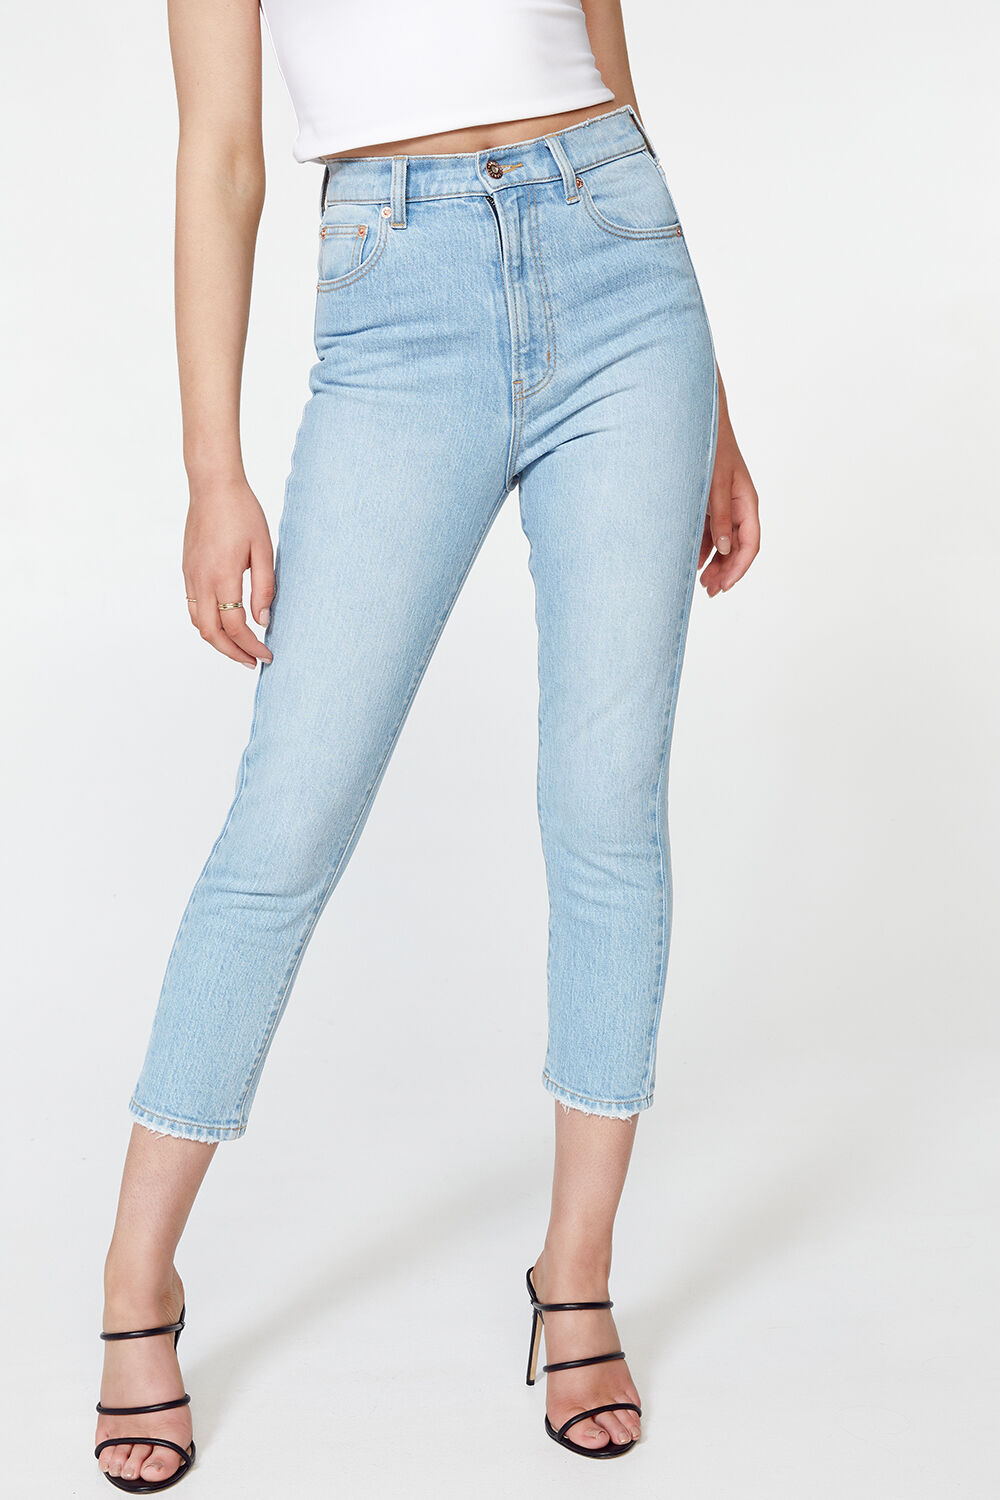 STRAIGHT SUPER HIGH JEAN in colour TRUE NAVY